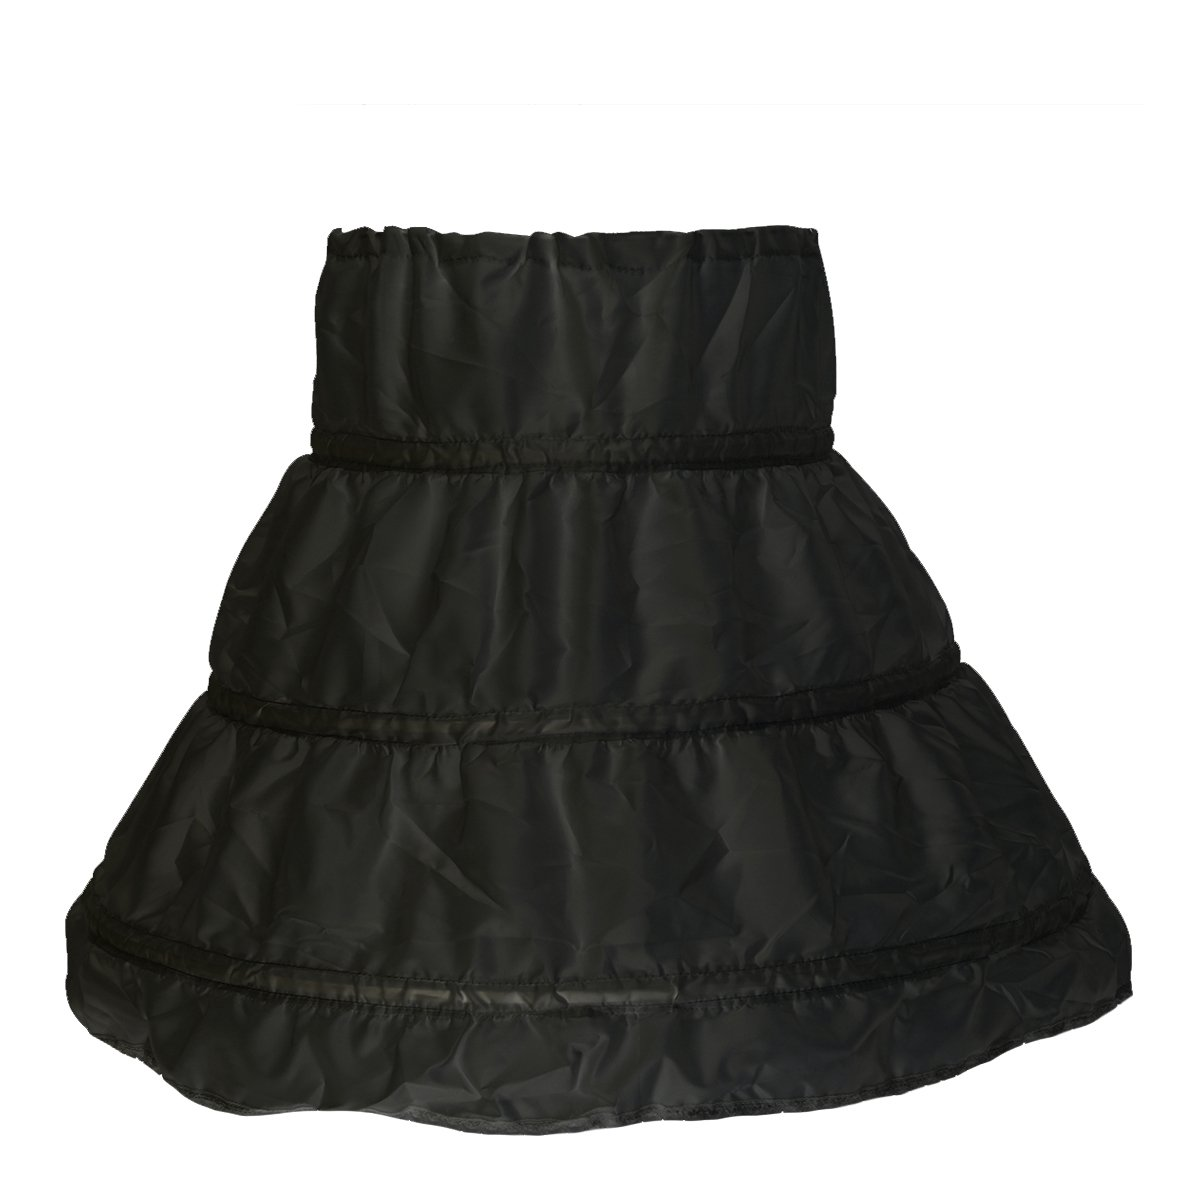 2f7620f9d EBTOYS Girls' Petticoat 3 Hoops Crinoline Petticoat Flower Girl Slip  Wedding Underskirt Slip(Black